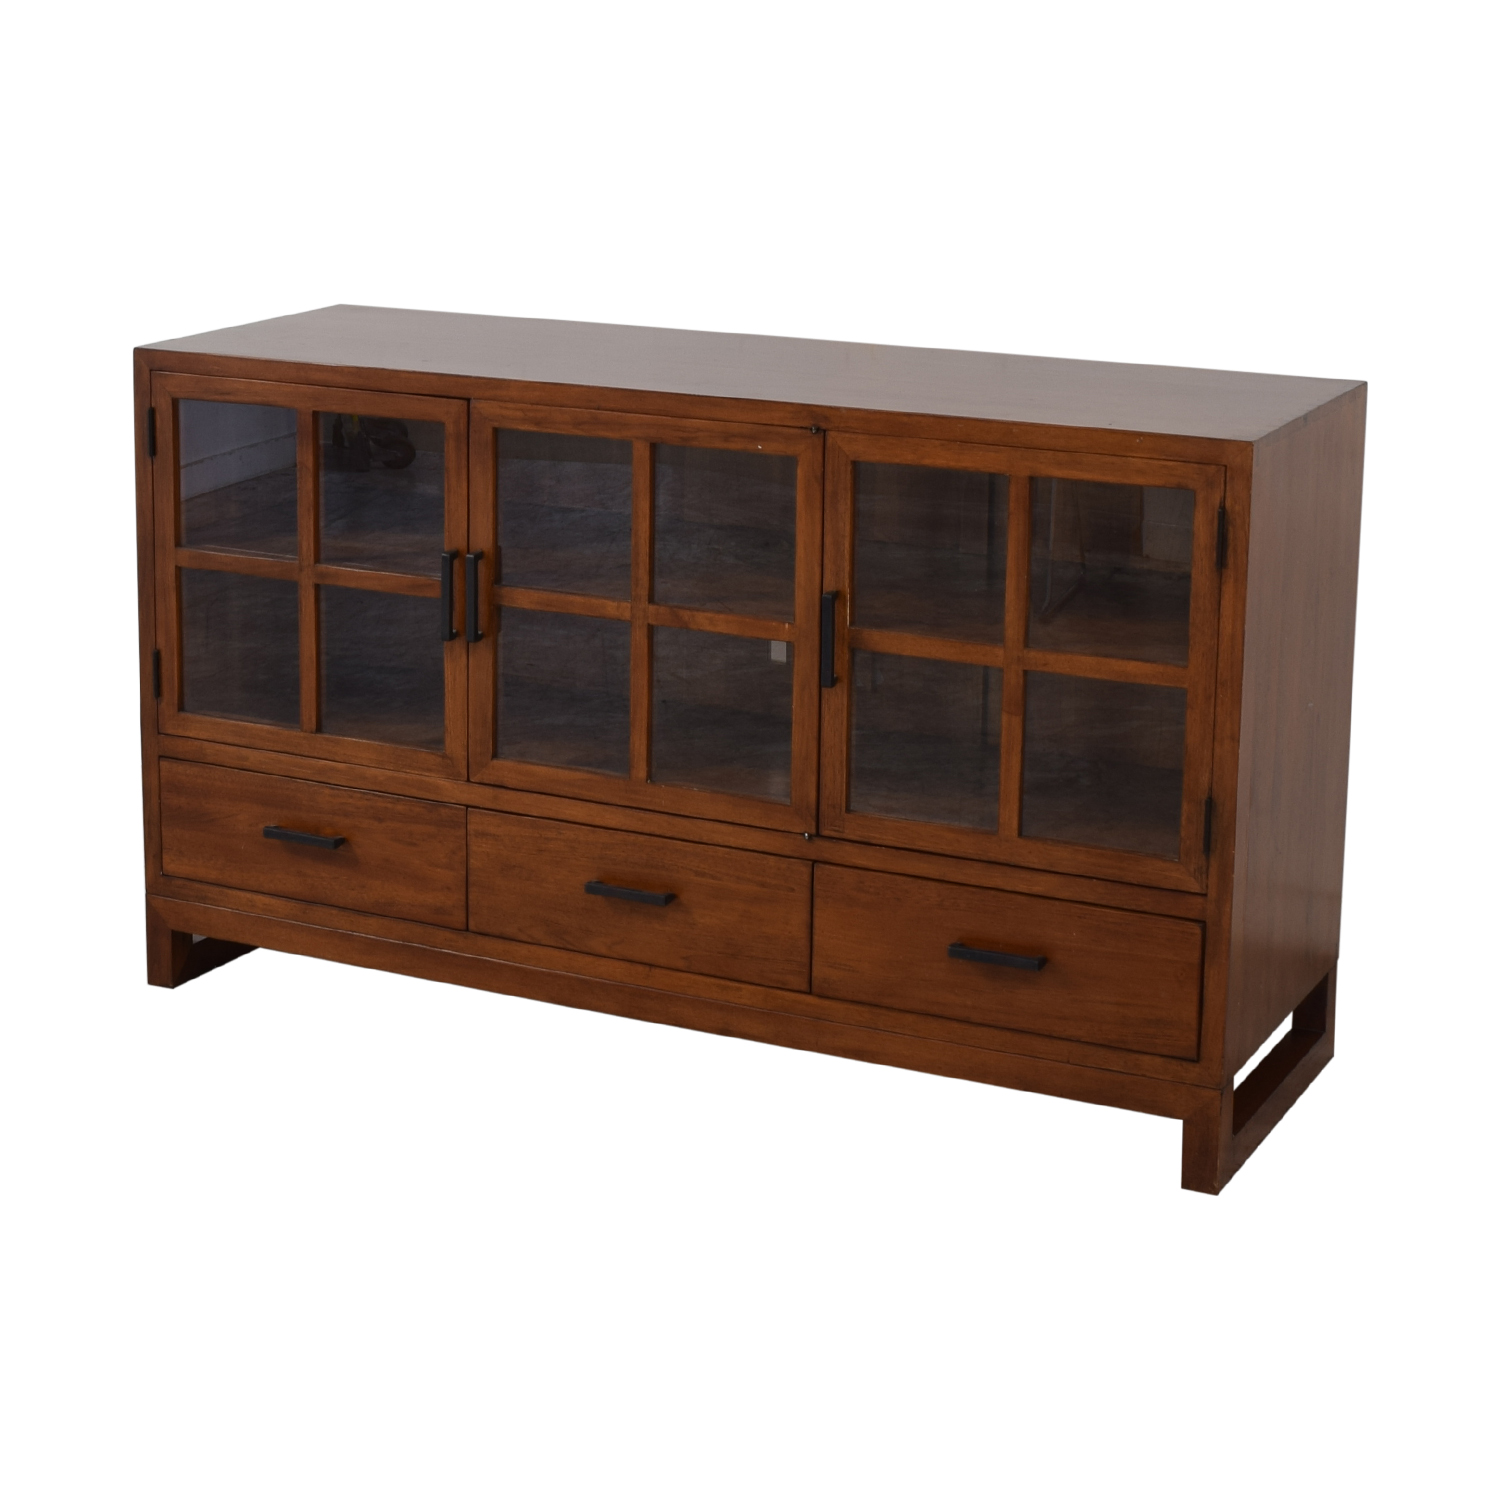 Crate & Barrel Sideboard with Glass Doors sale